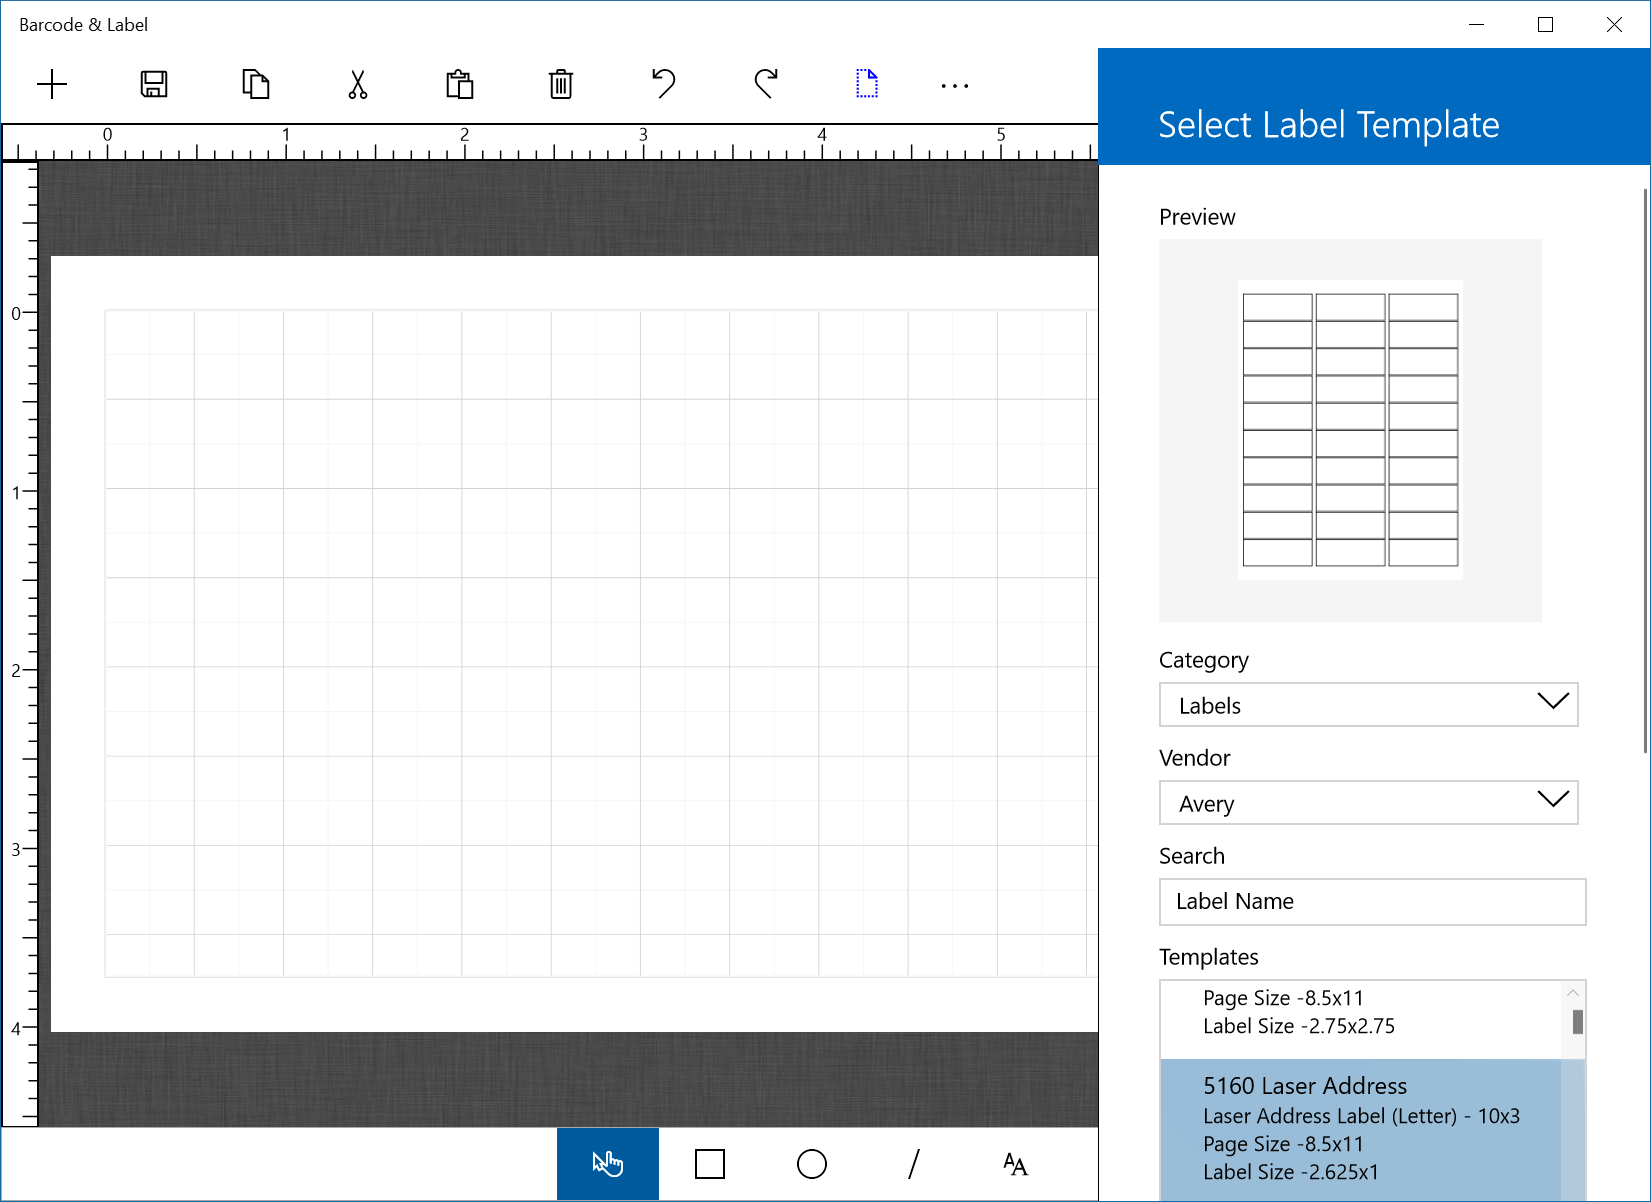 How Do I Print Labels From An Excel Spreadsheet In Print